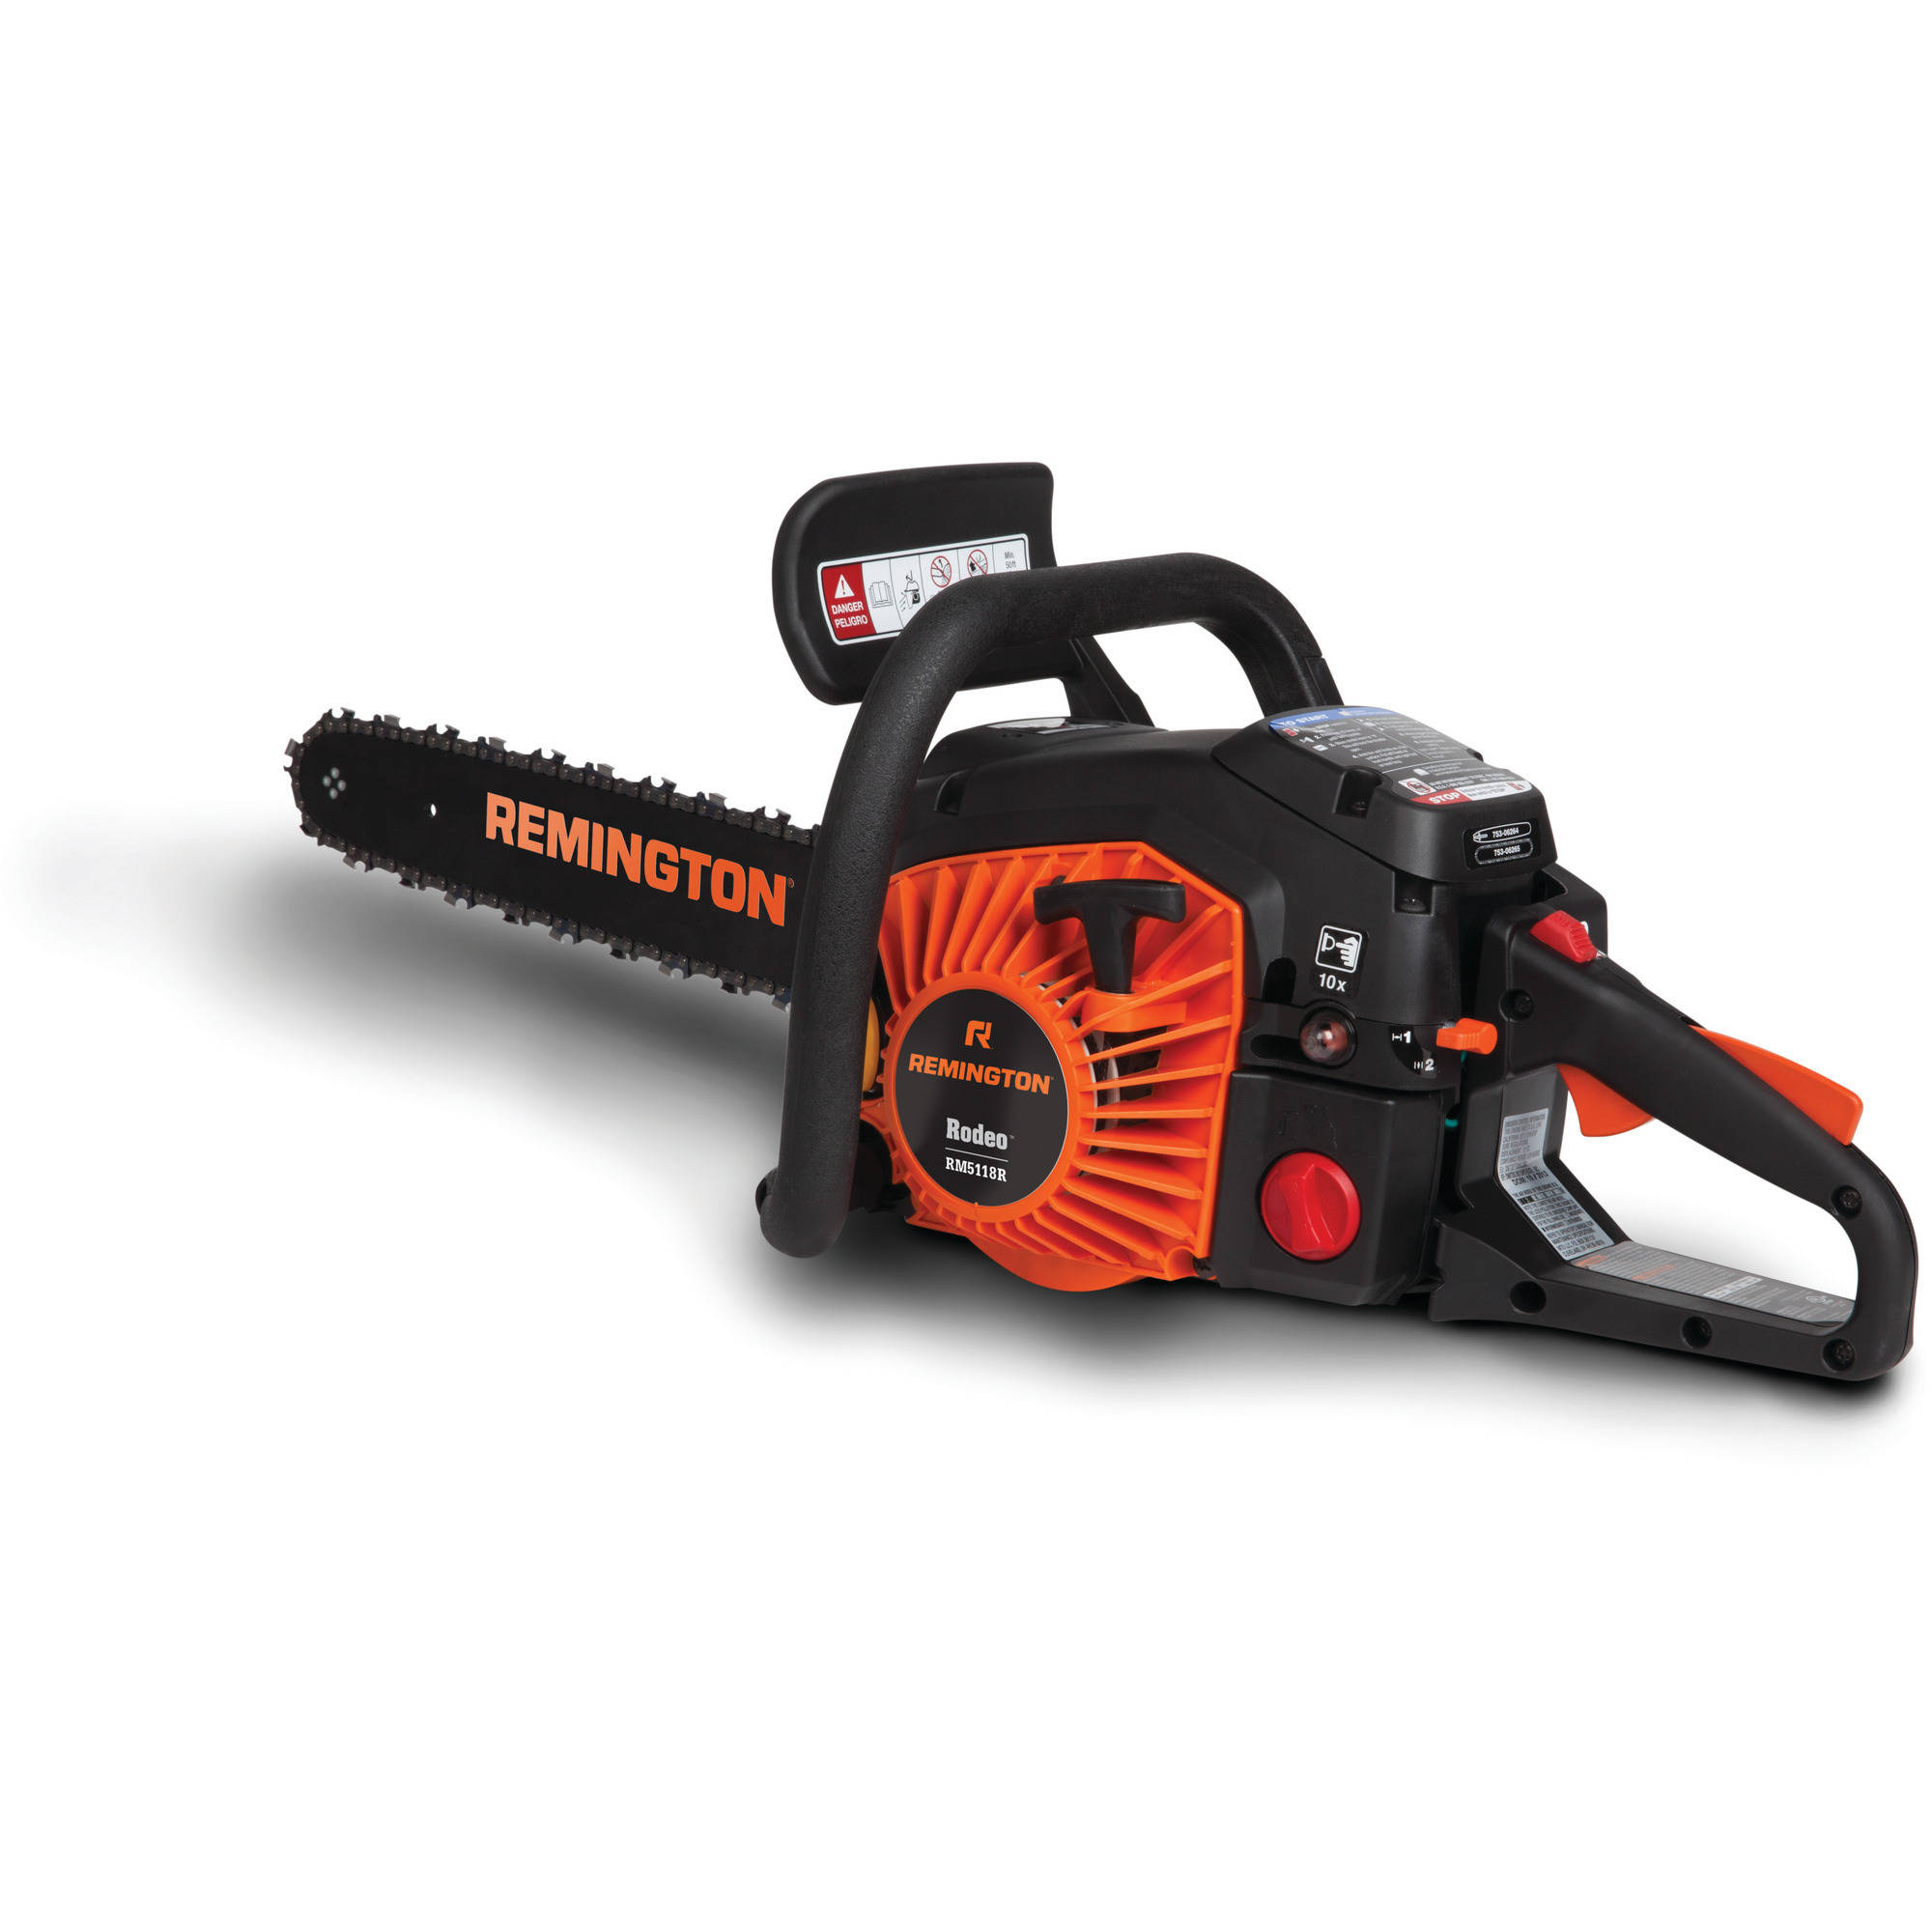 Remington rodeo 18 gas chainsaw walmart greentooth Gallery